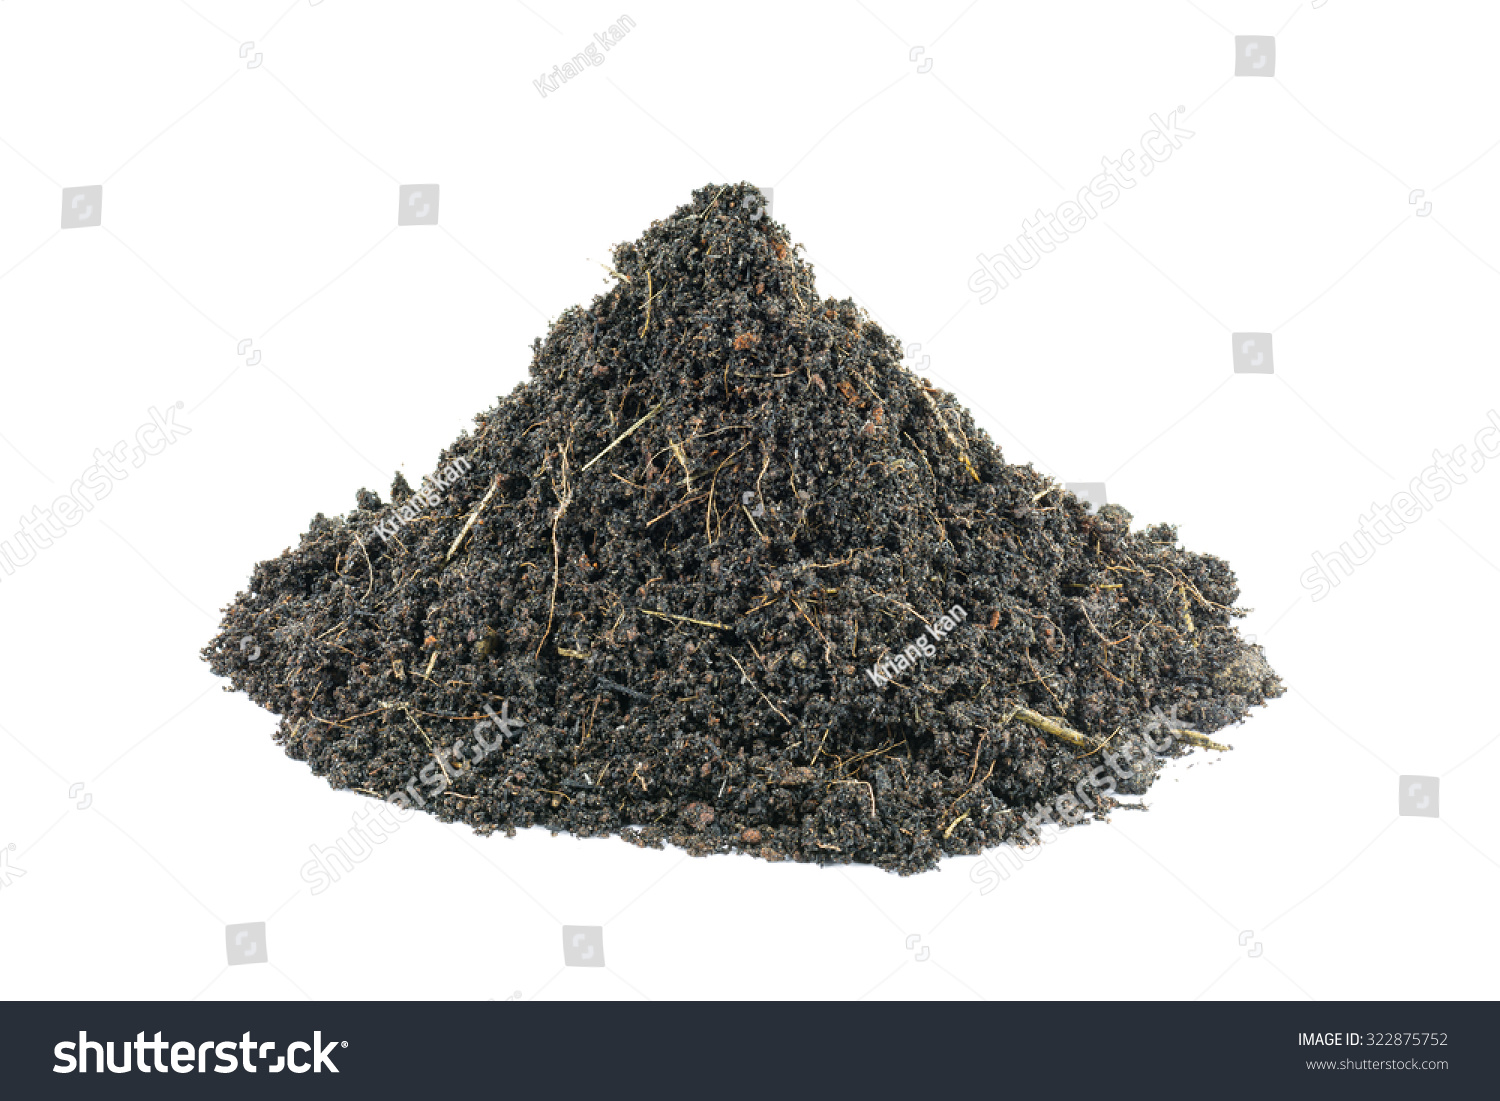 Mound soil growing plants mixture rich stock photo for What is soil a mixture of